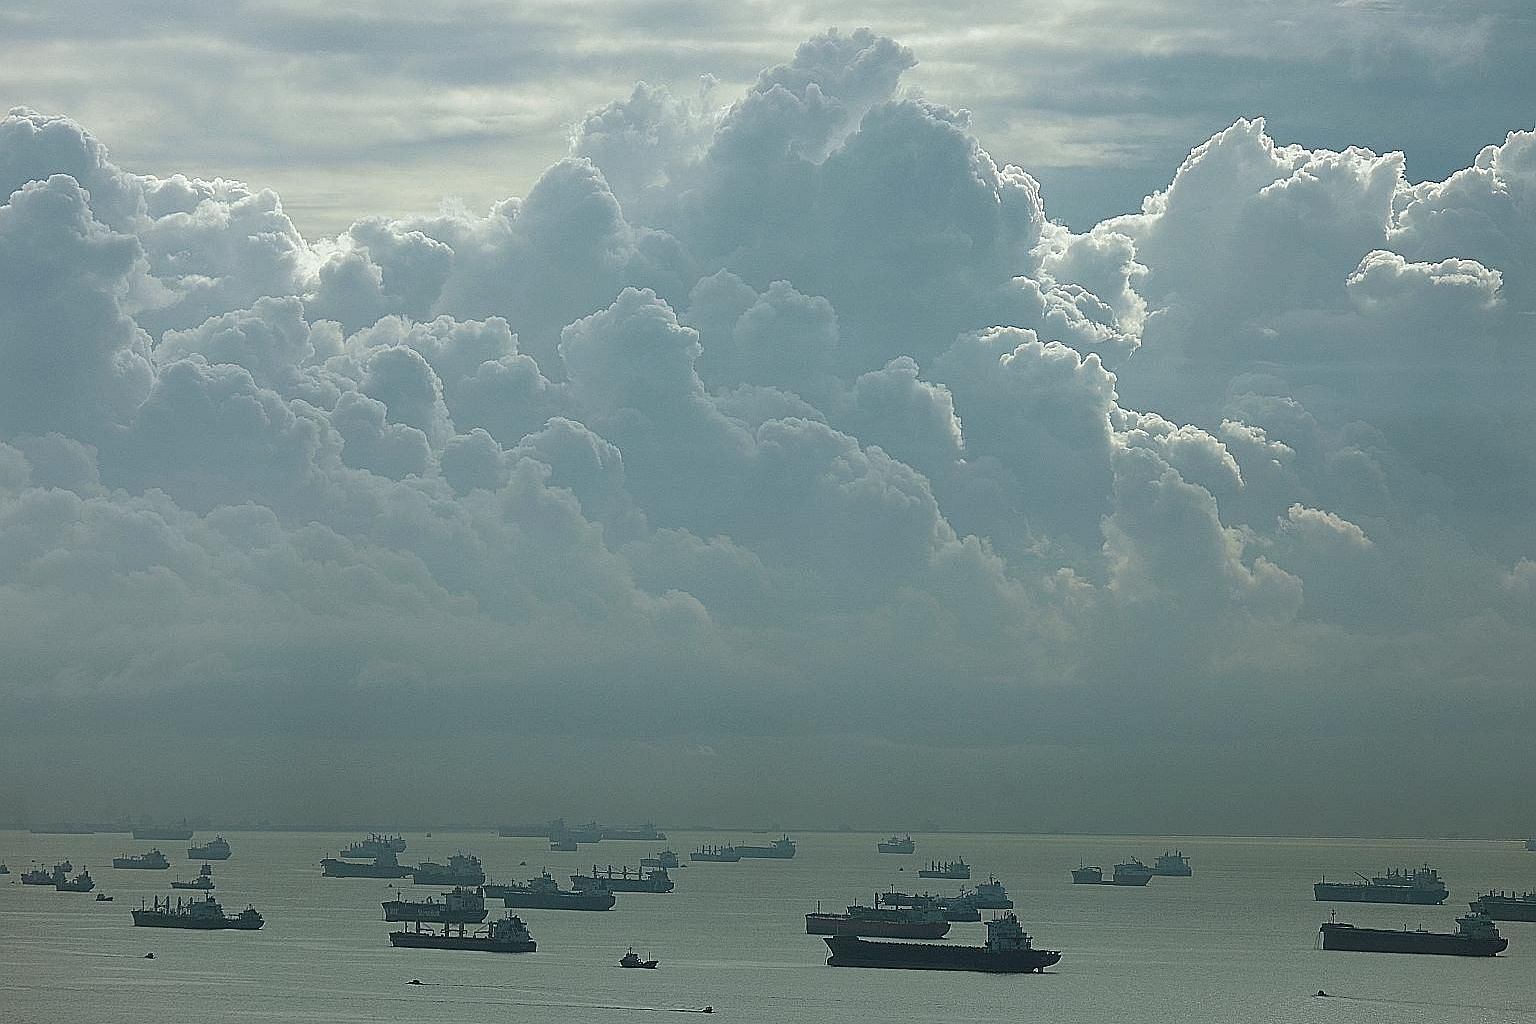 Under new International Maritime Organisation rules, ships are prohibited from using fuels containing more than 0.5 per cent sulphur. This will reduce the amount of sulphur oxides emitted by ships and in turn cut air pollution.